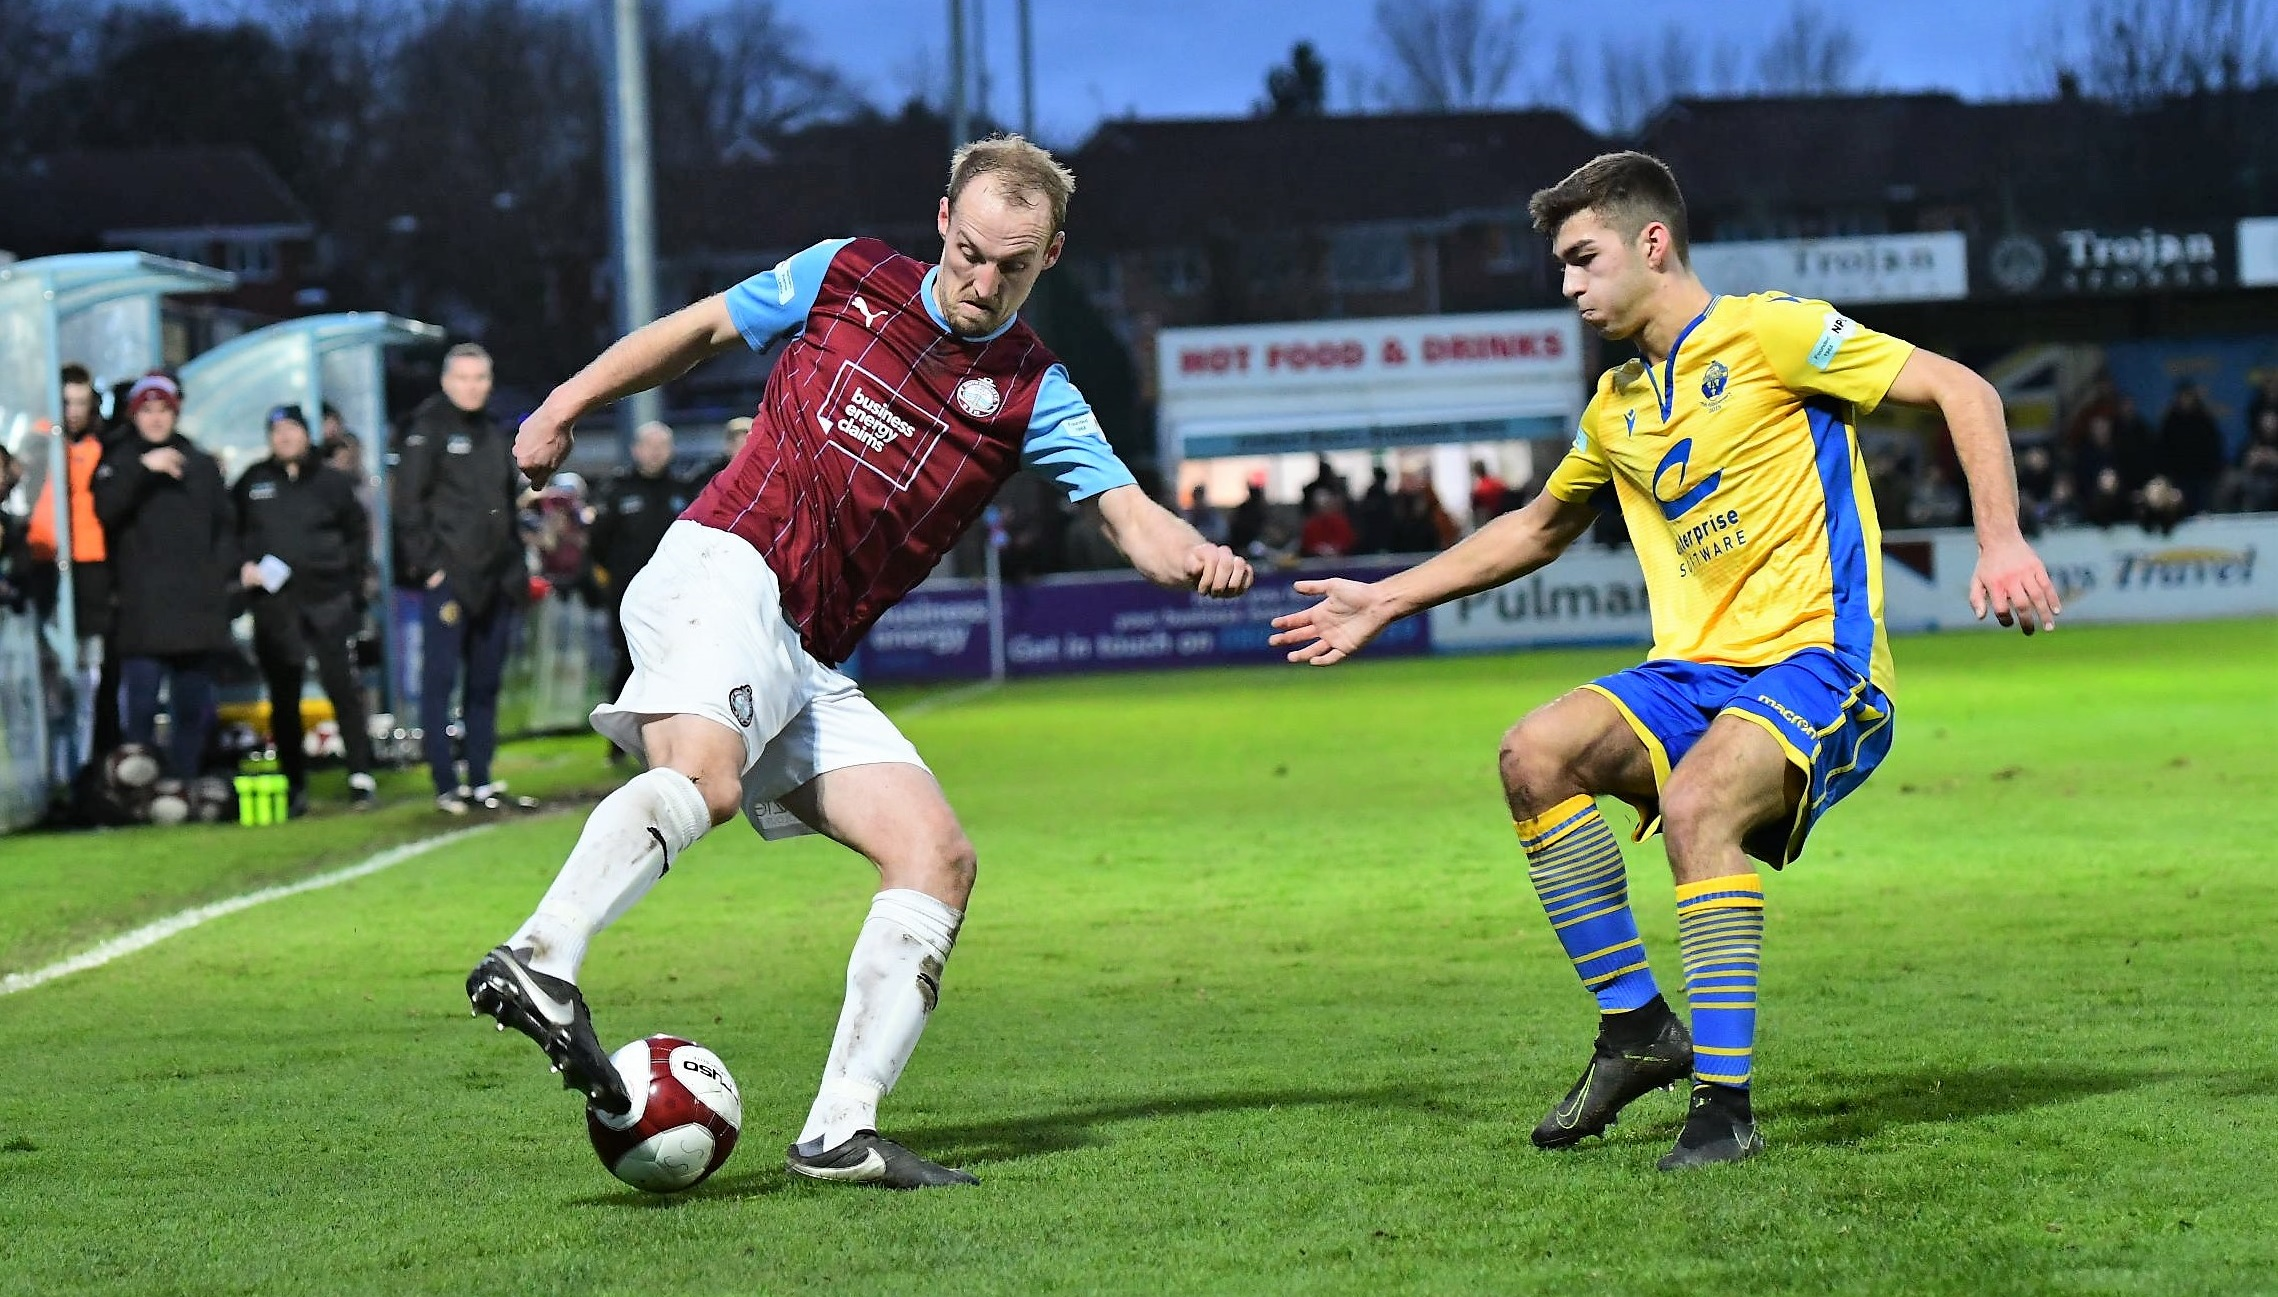 South Shields 1-1 Warrington Town: Brilliant 10-man Mariners battle to point